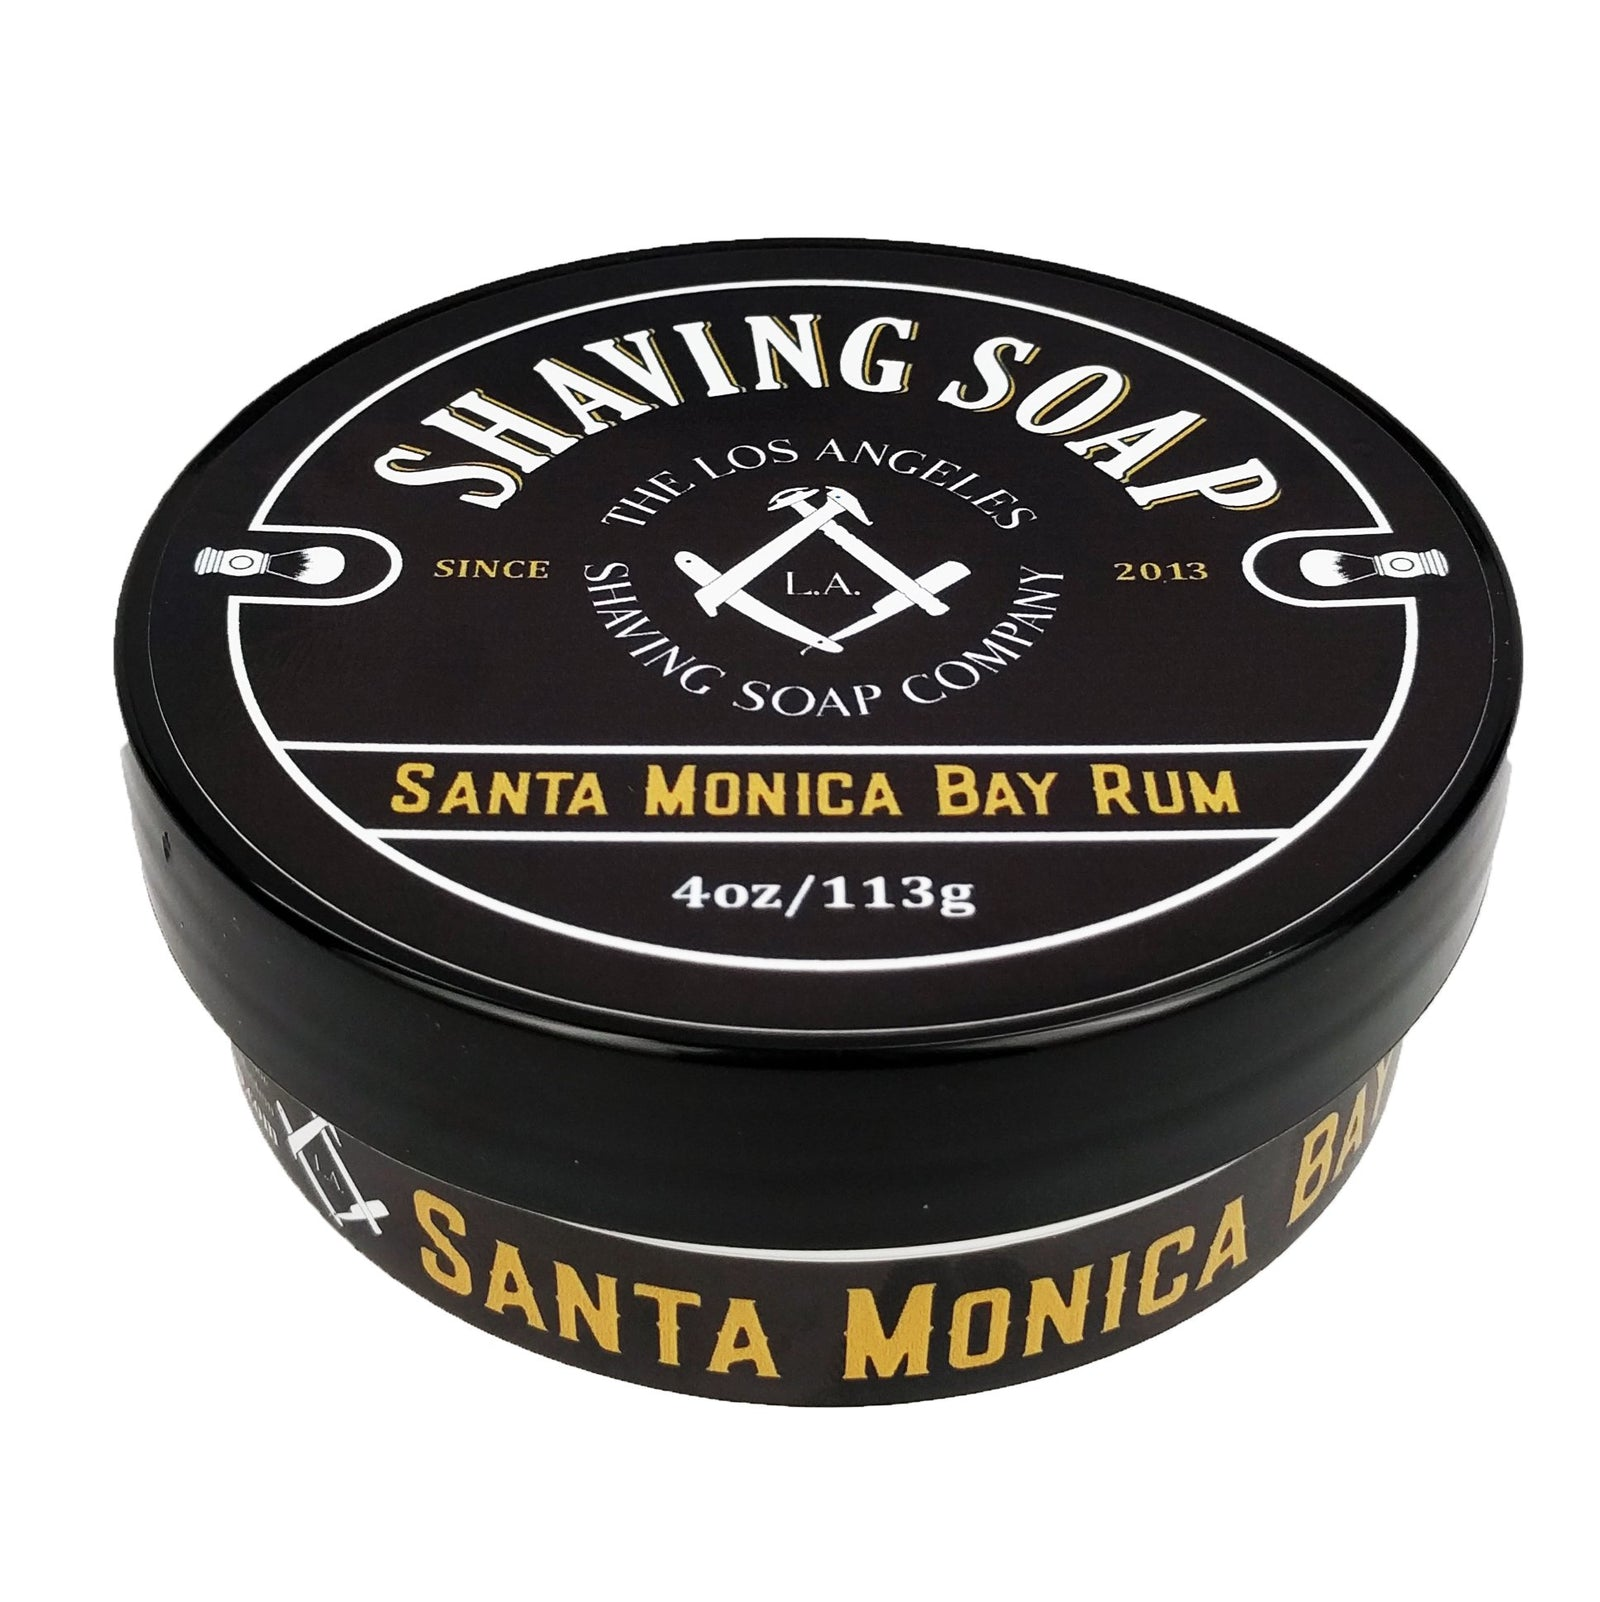 LA Shaving Soap Co - Santa Monica Bay Rum Vegan Shaving Soap